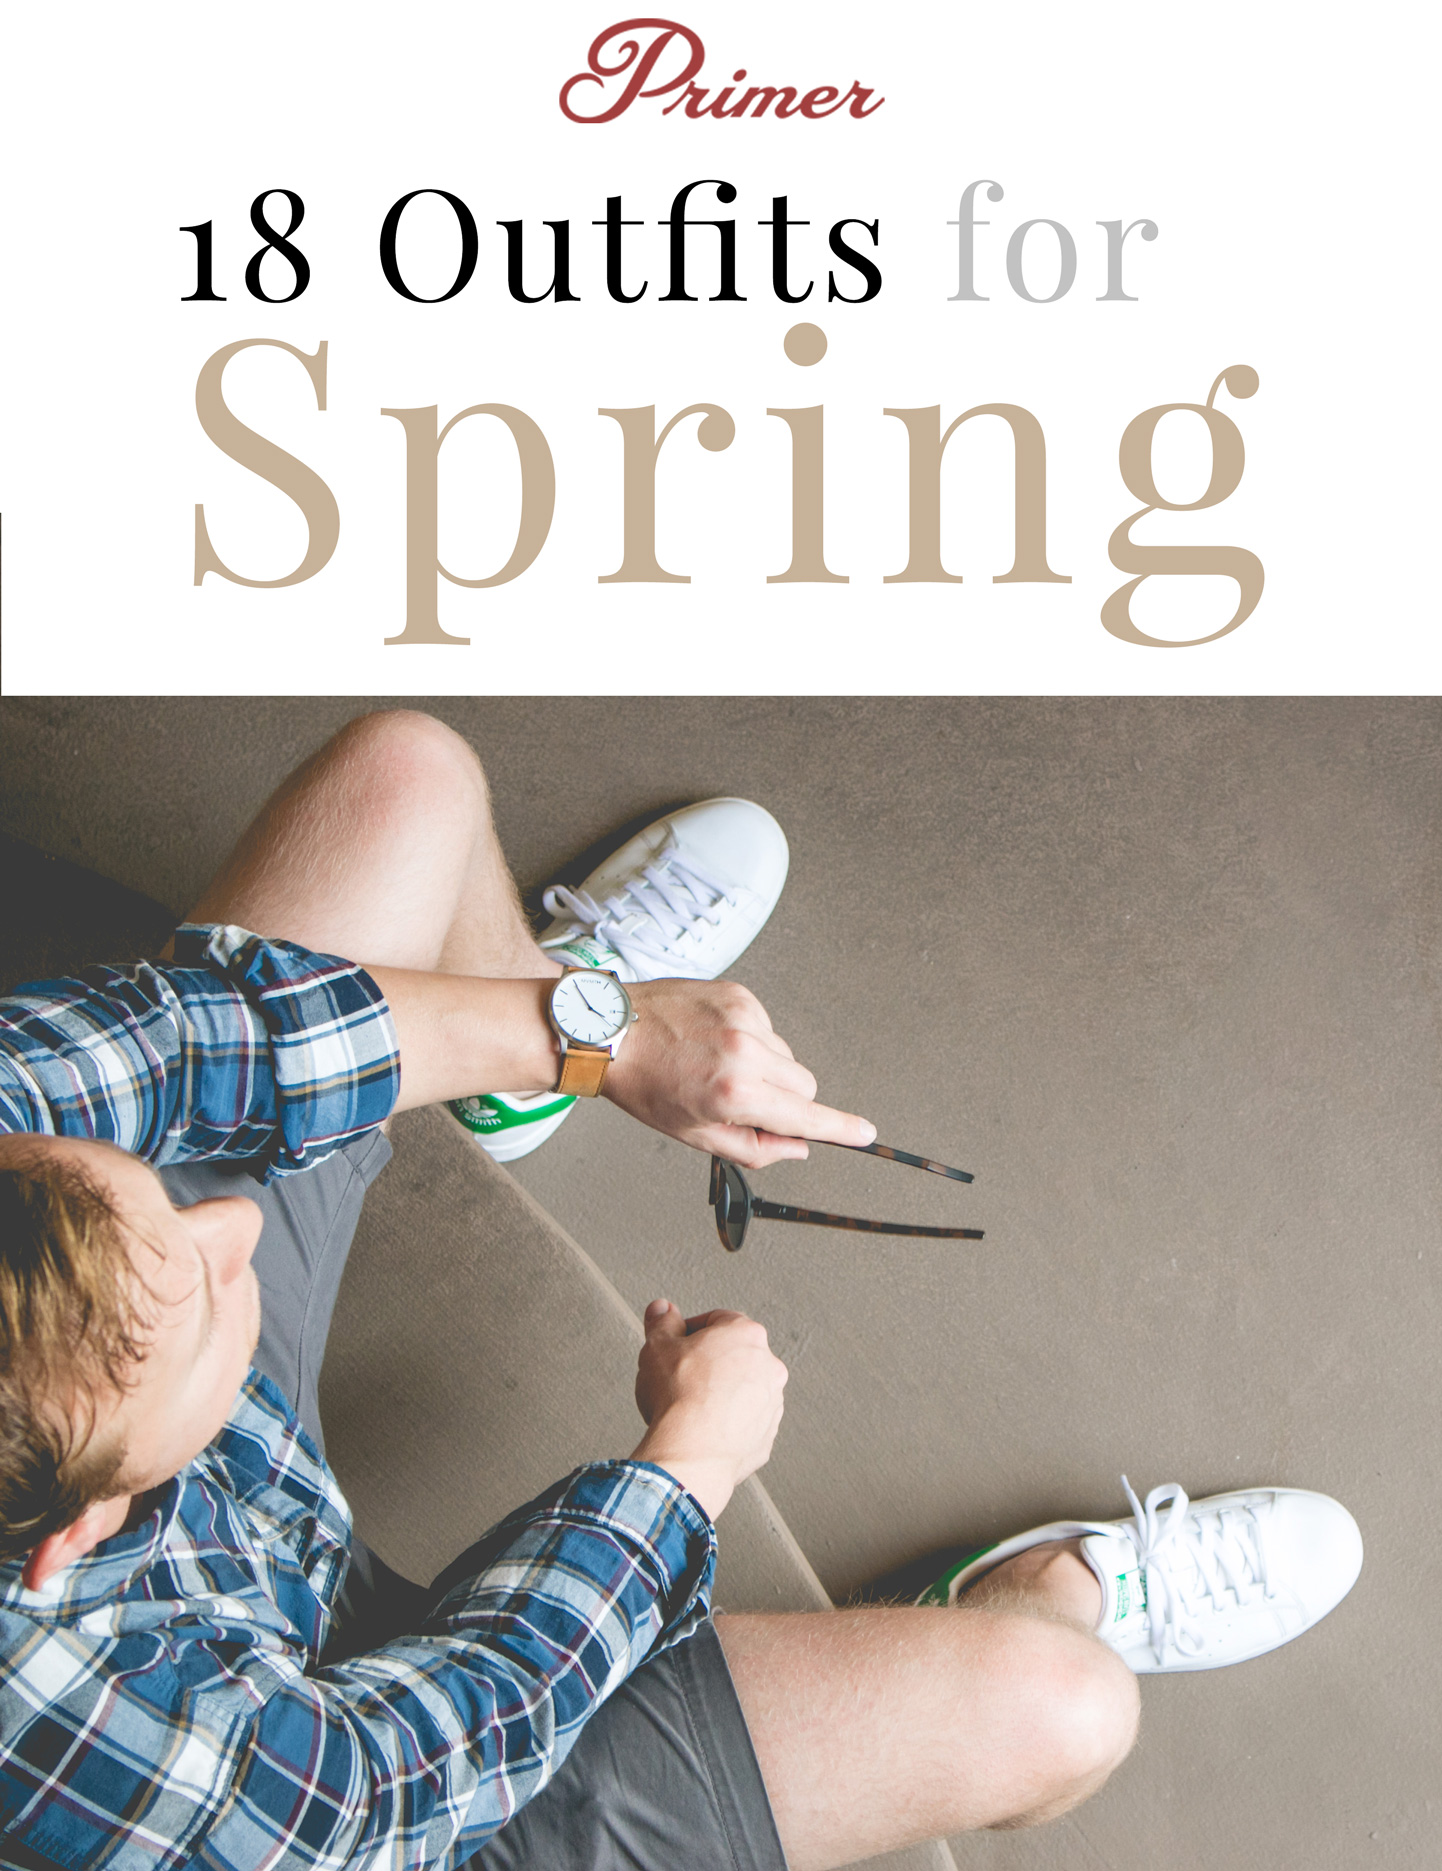 18 Outfits for Spring - Free Men's Style Inspiration Made Easy